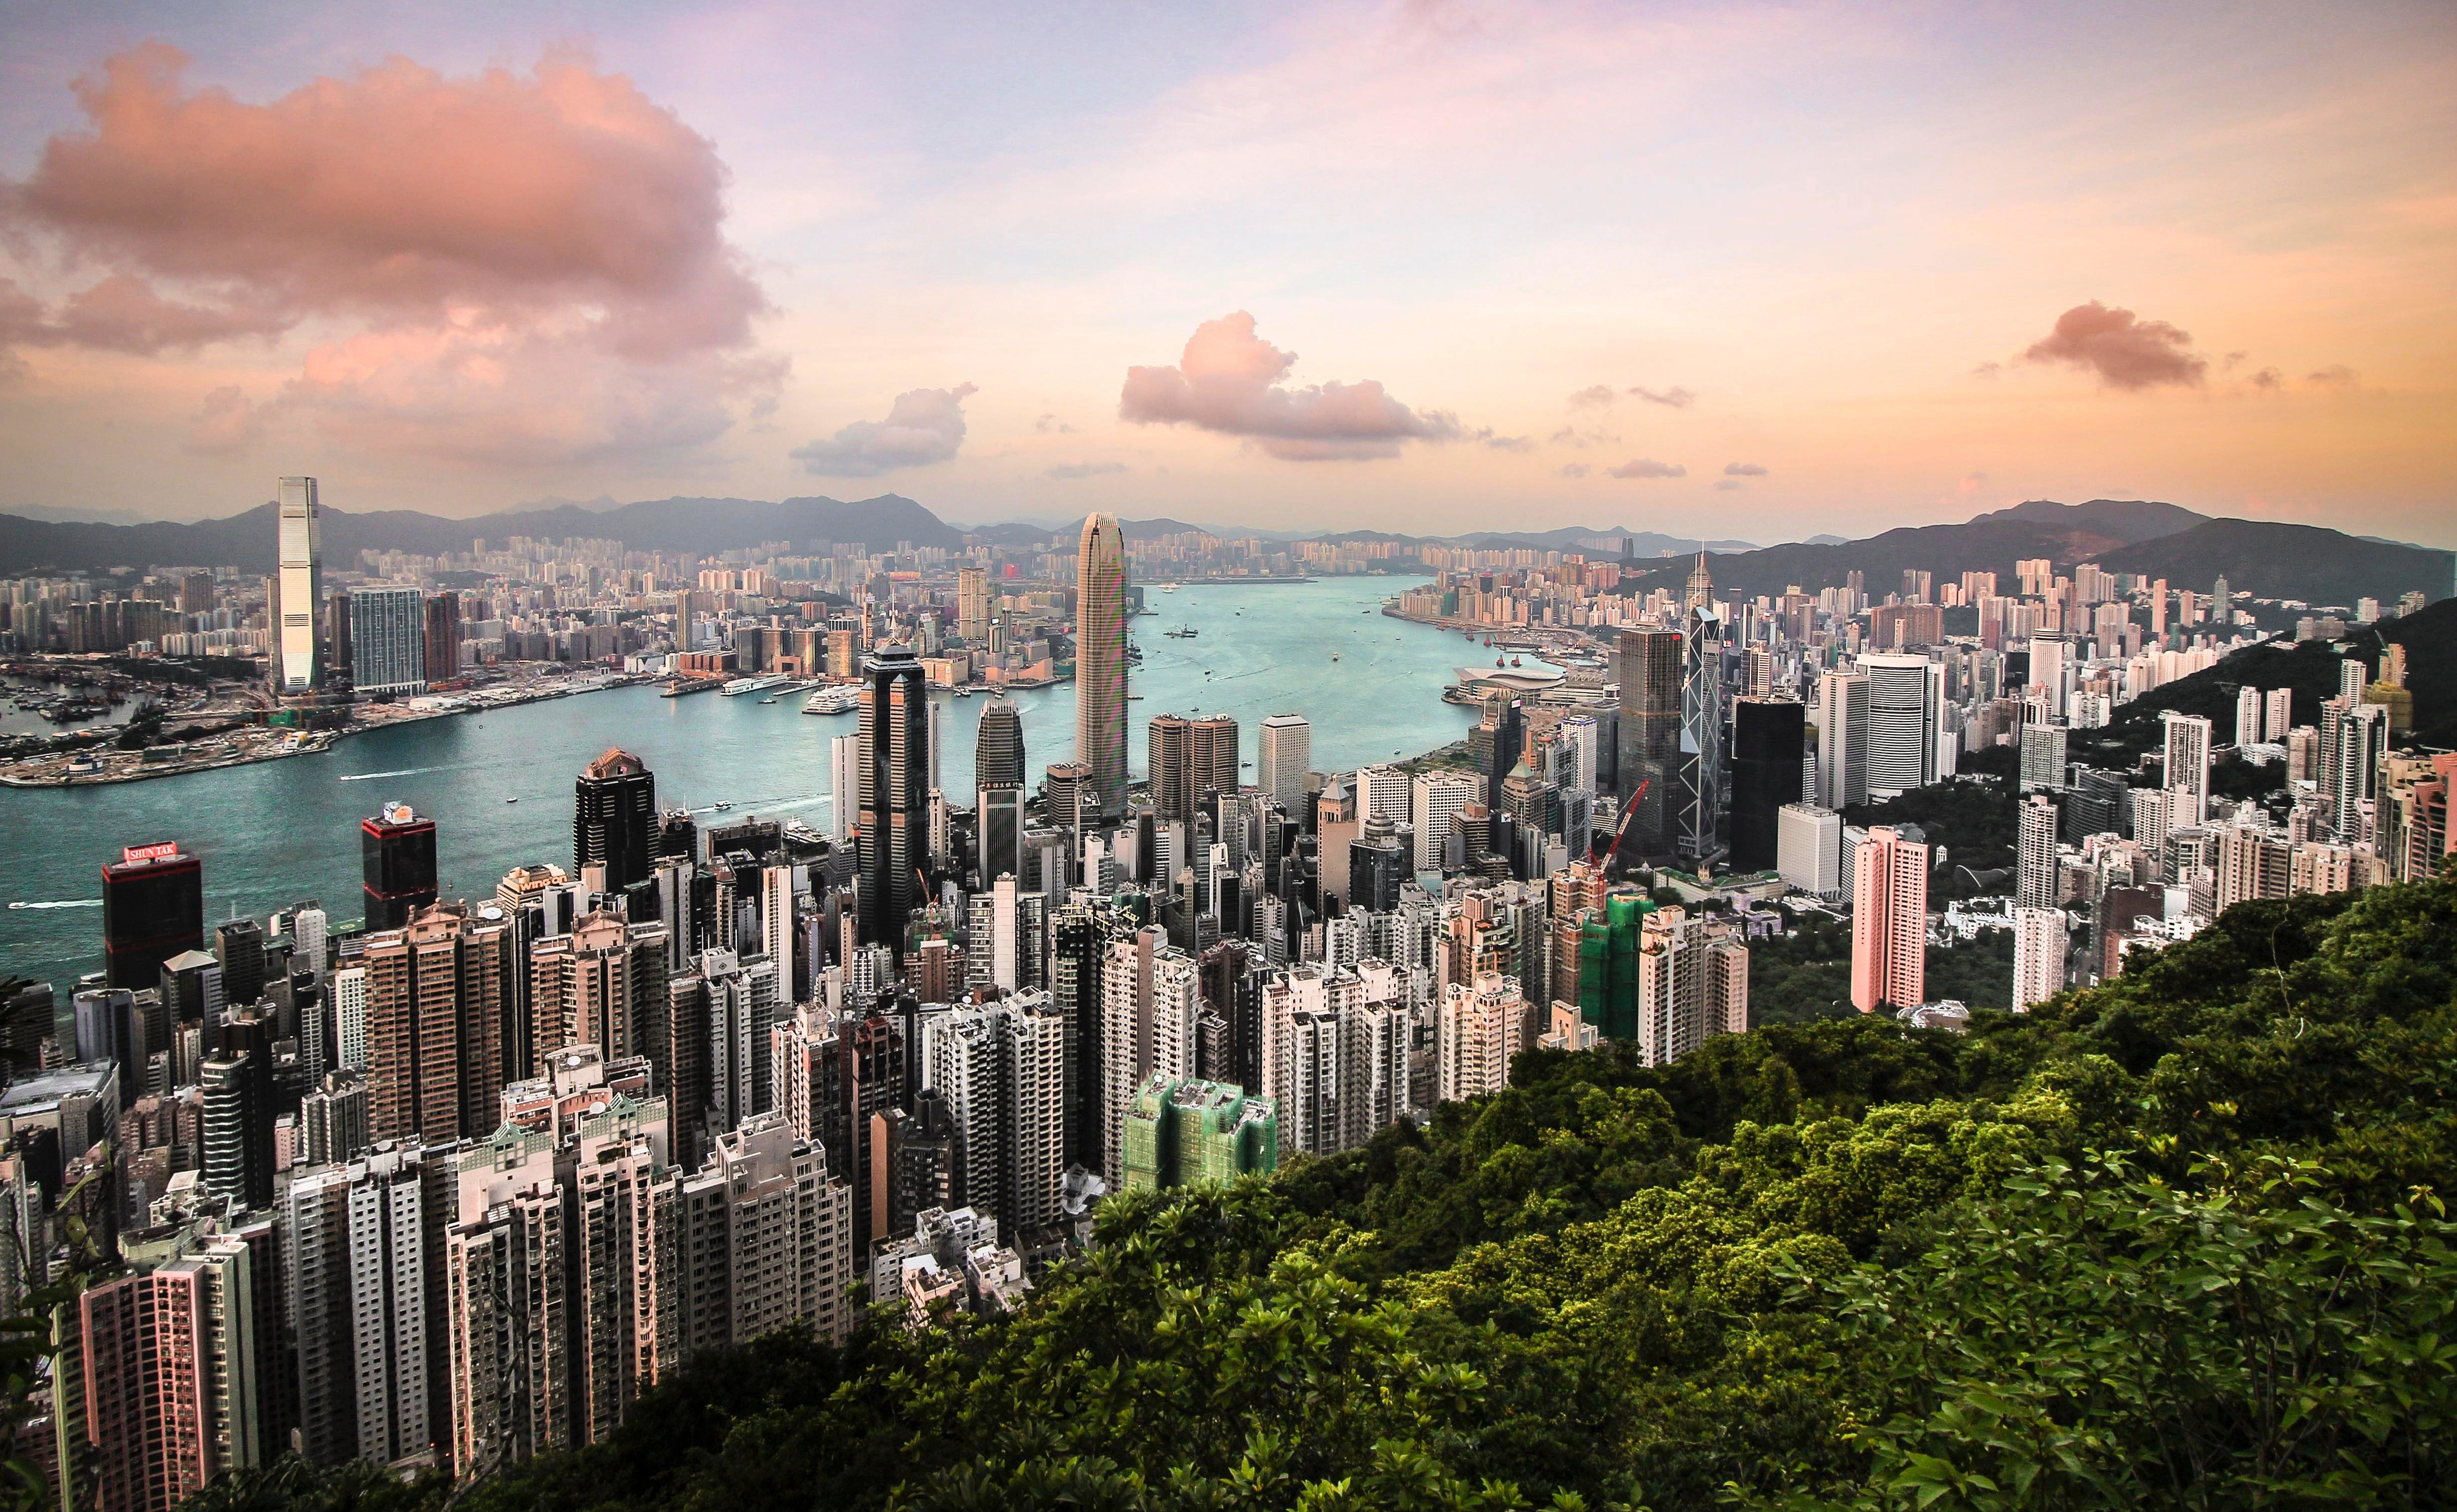 Hong Kong, with the help of its universities, is hoping to achieve carbon neutrality by 2050